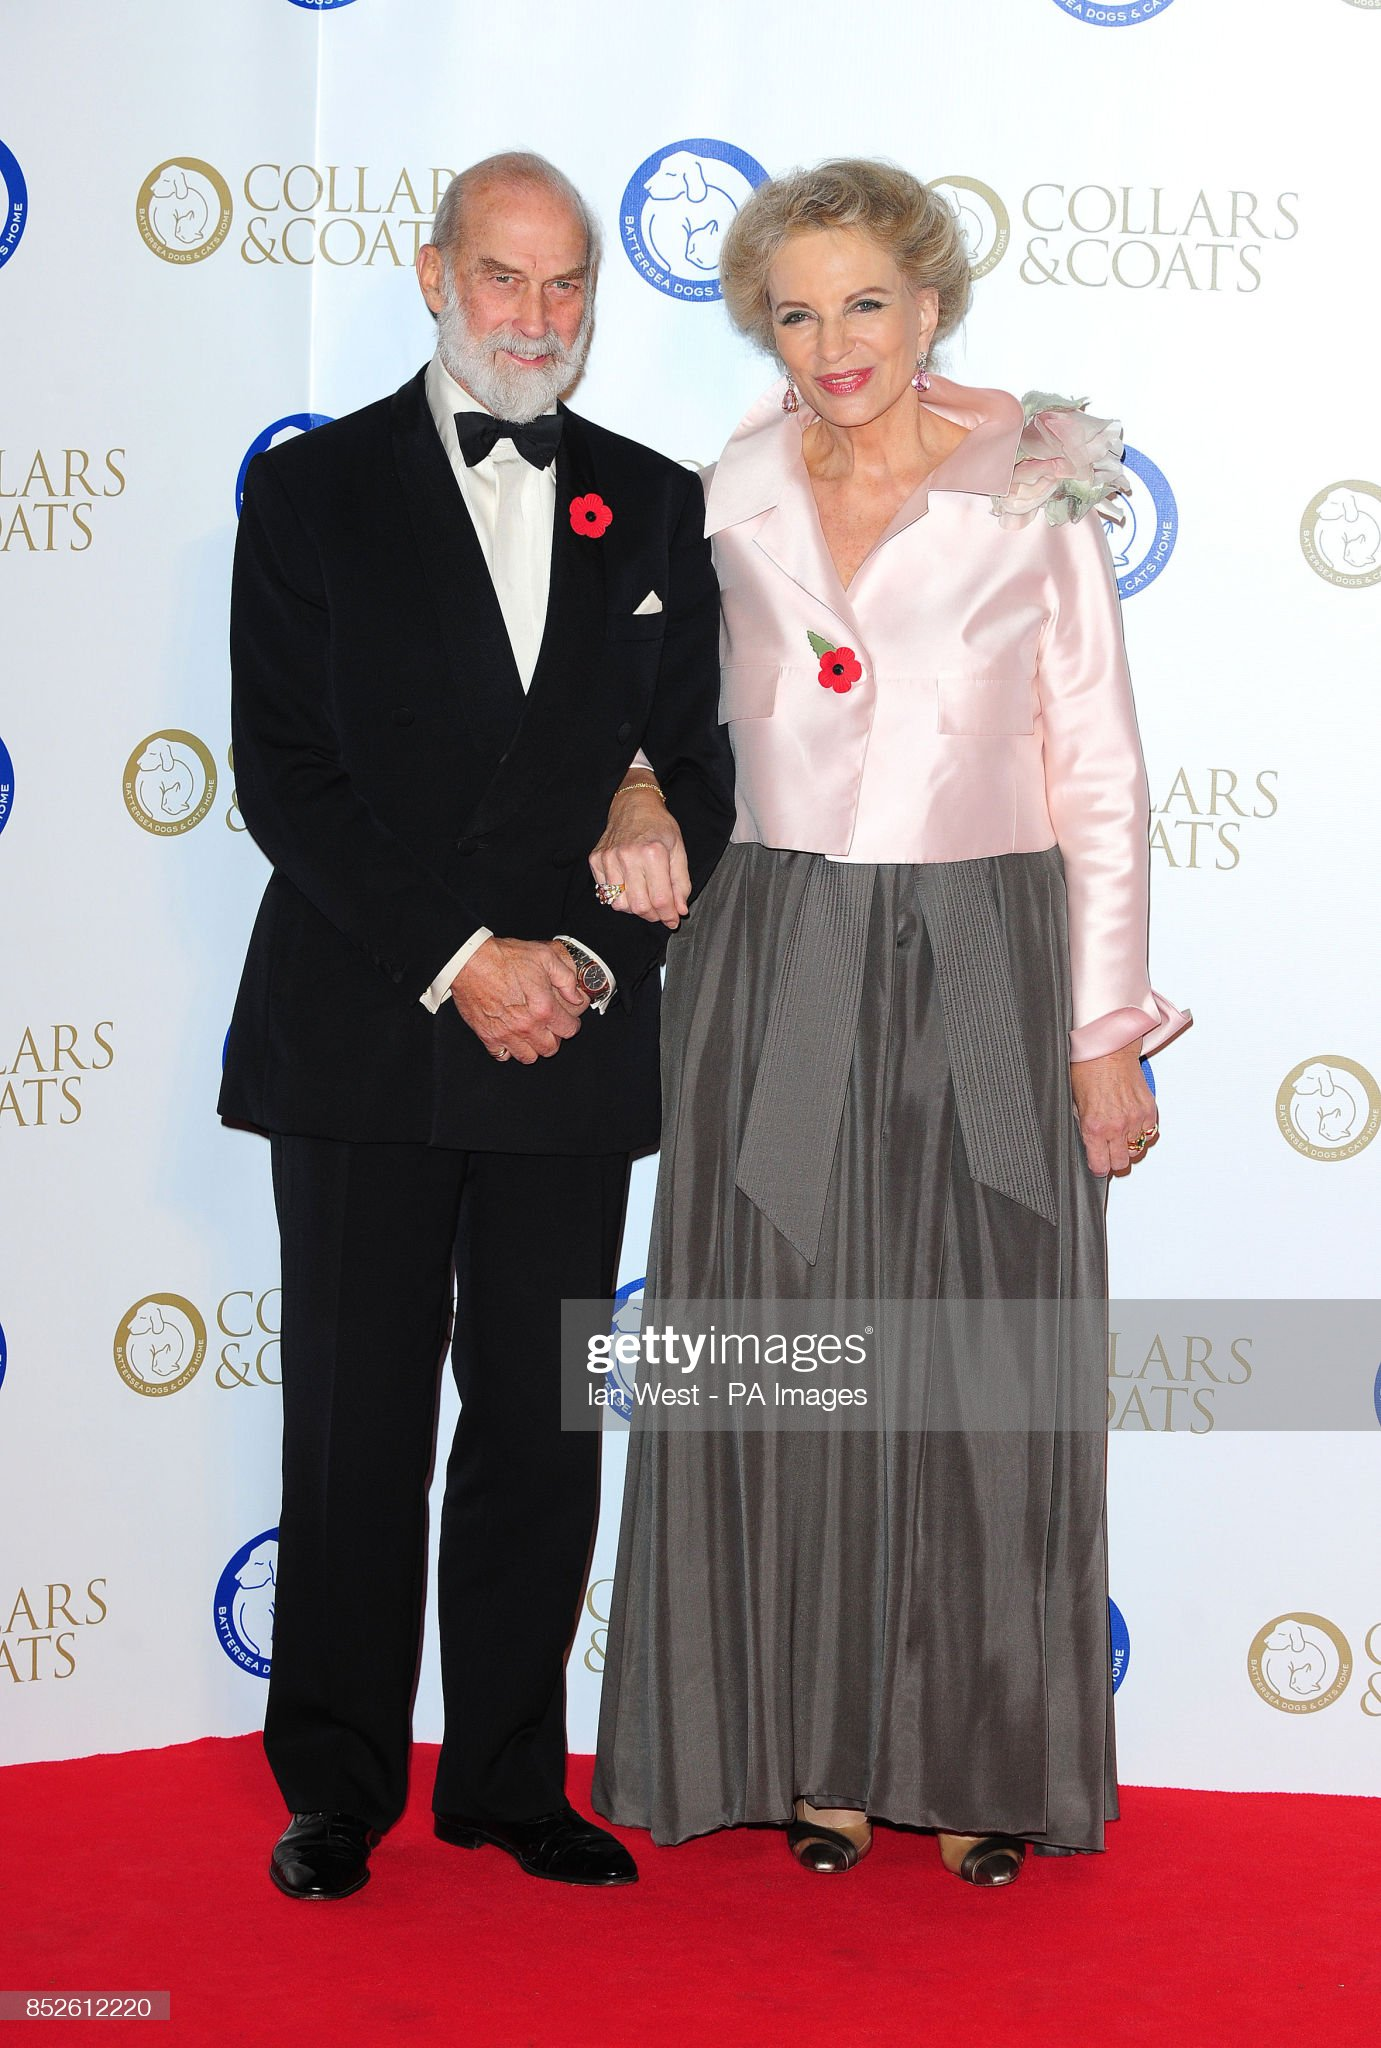 Collars and Coats Gala Ball - London : News Photo